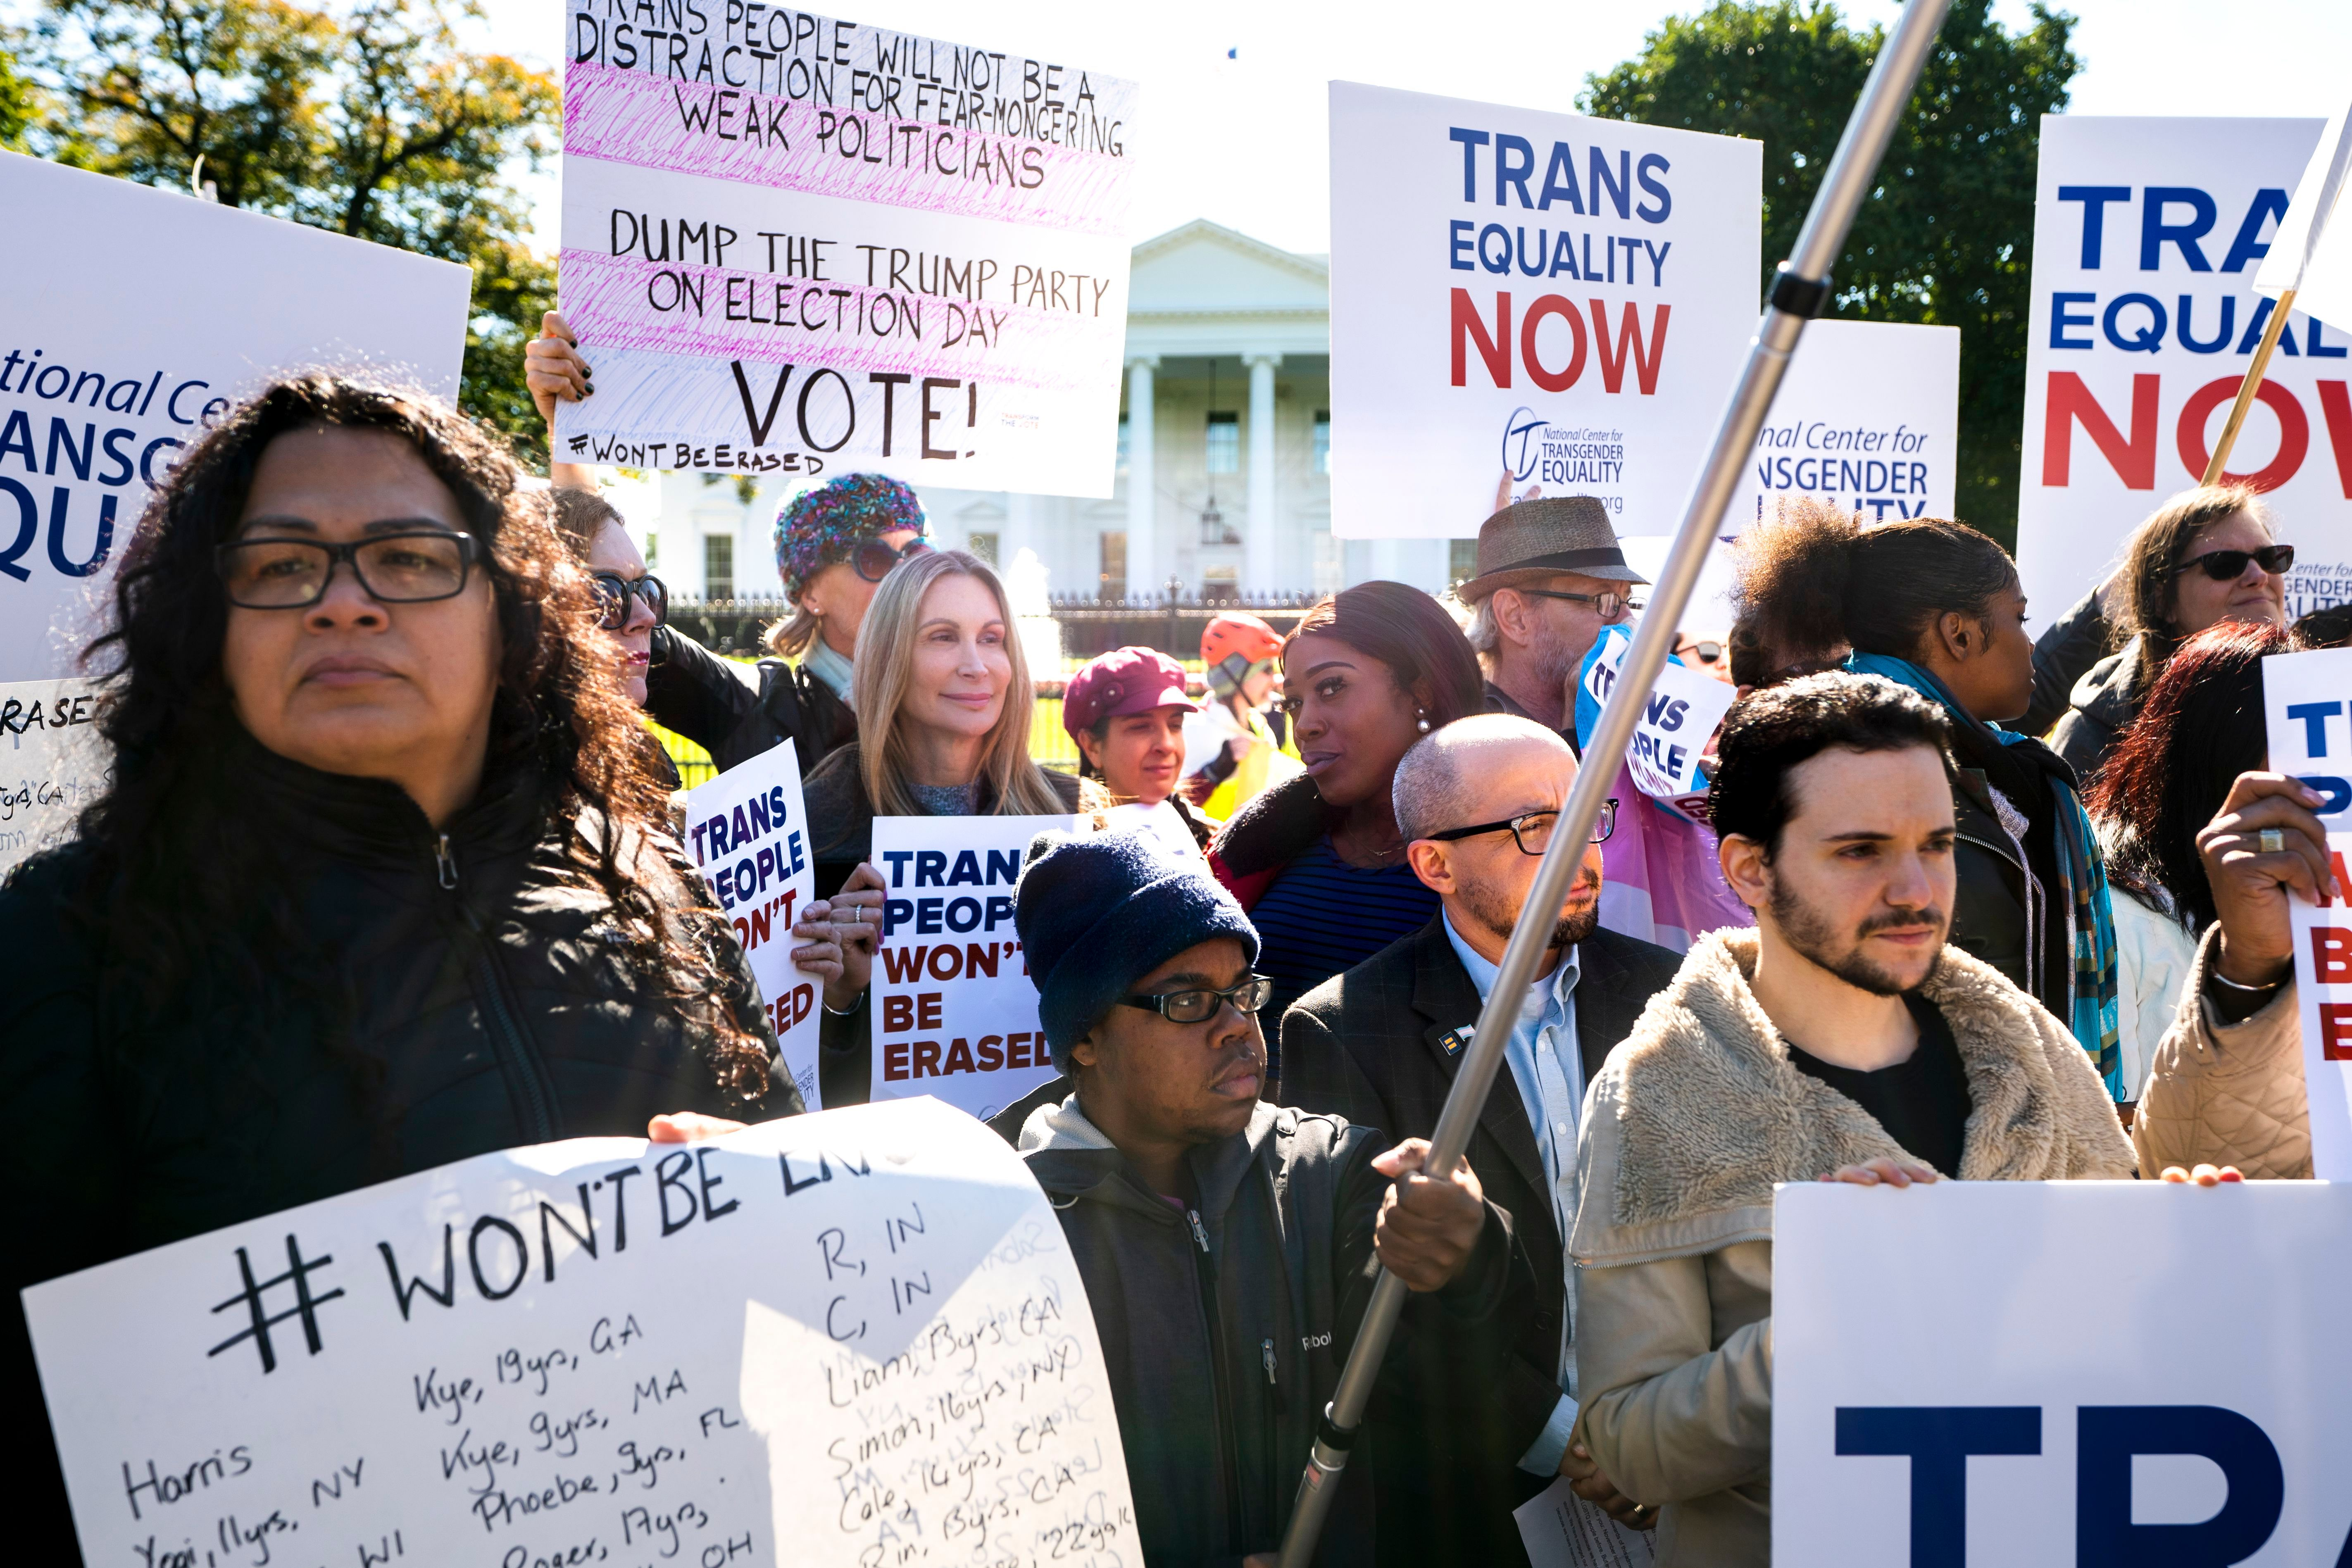 A group of activists outside the White House last October protesting for trans rights